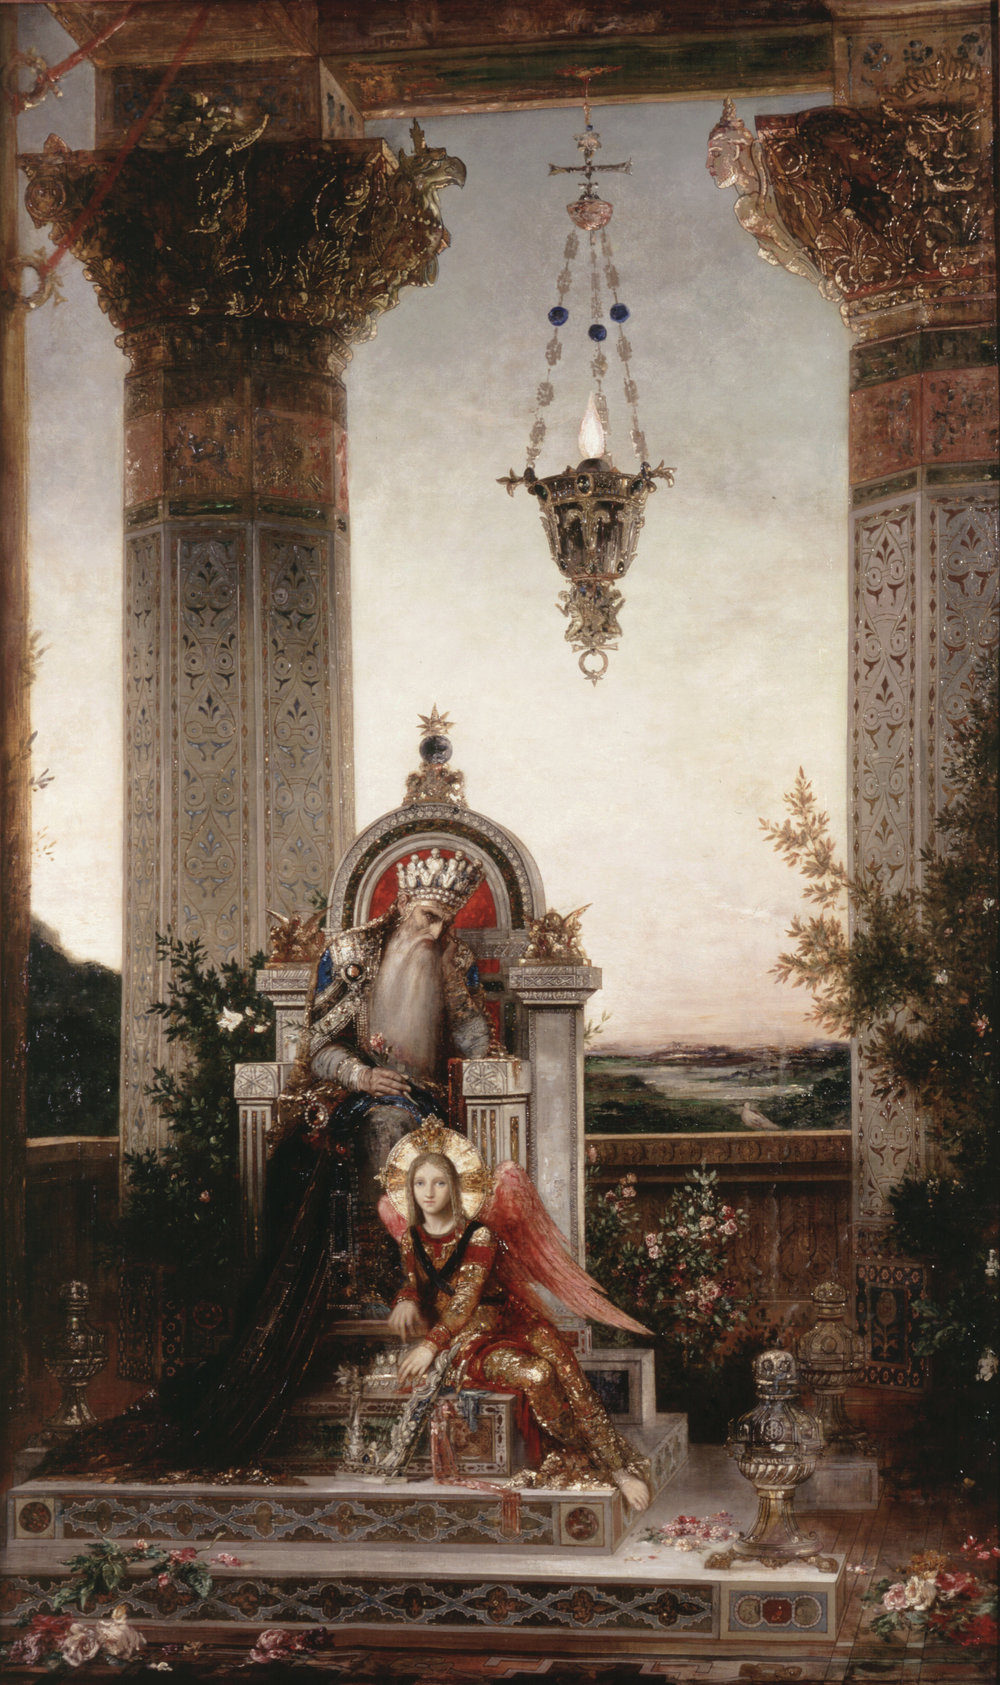 King David  (1878) by Gustave Moreau. The Hammer Museum (Los Angeles, CA).